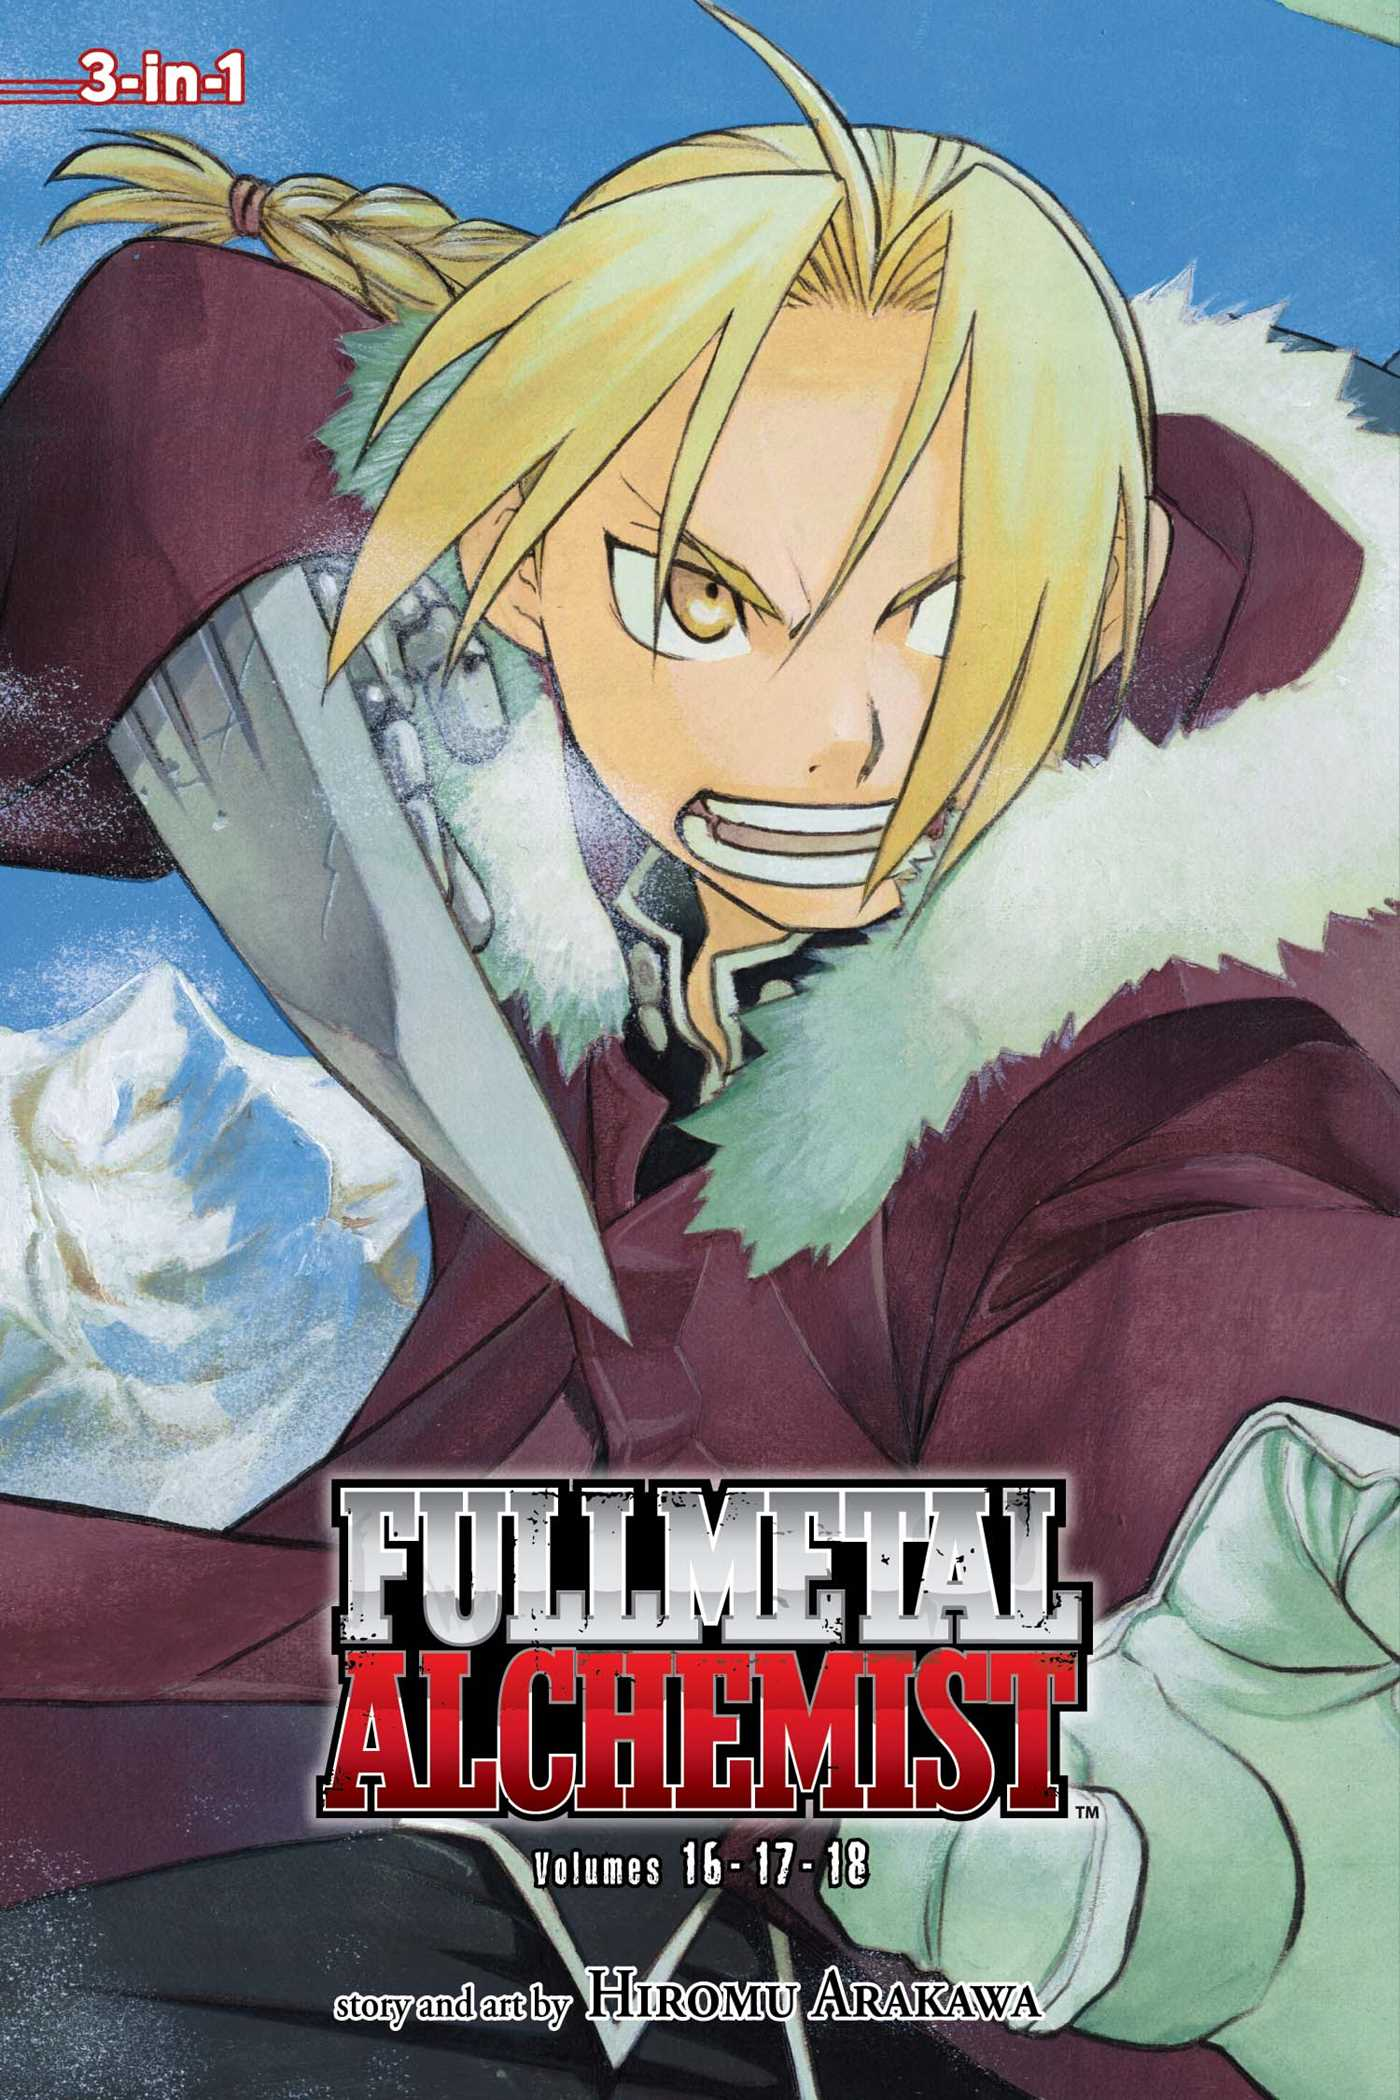 Fullmetal alchemist 3 in 1 edition vol 6 9781421554938 hr